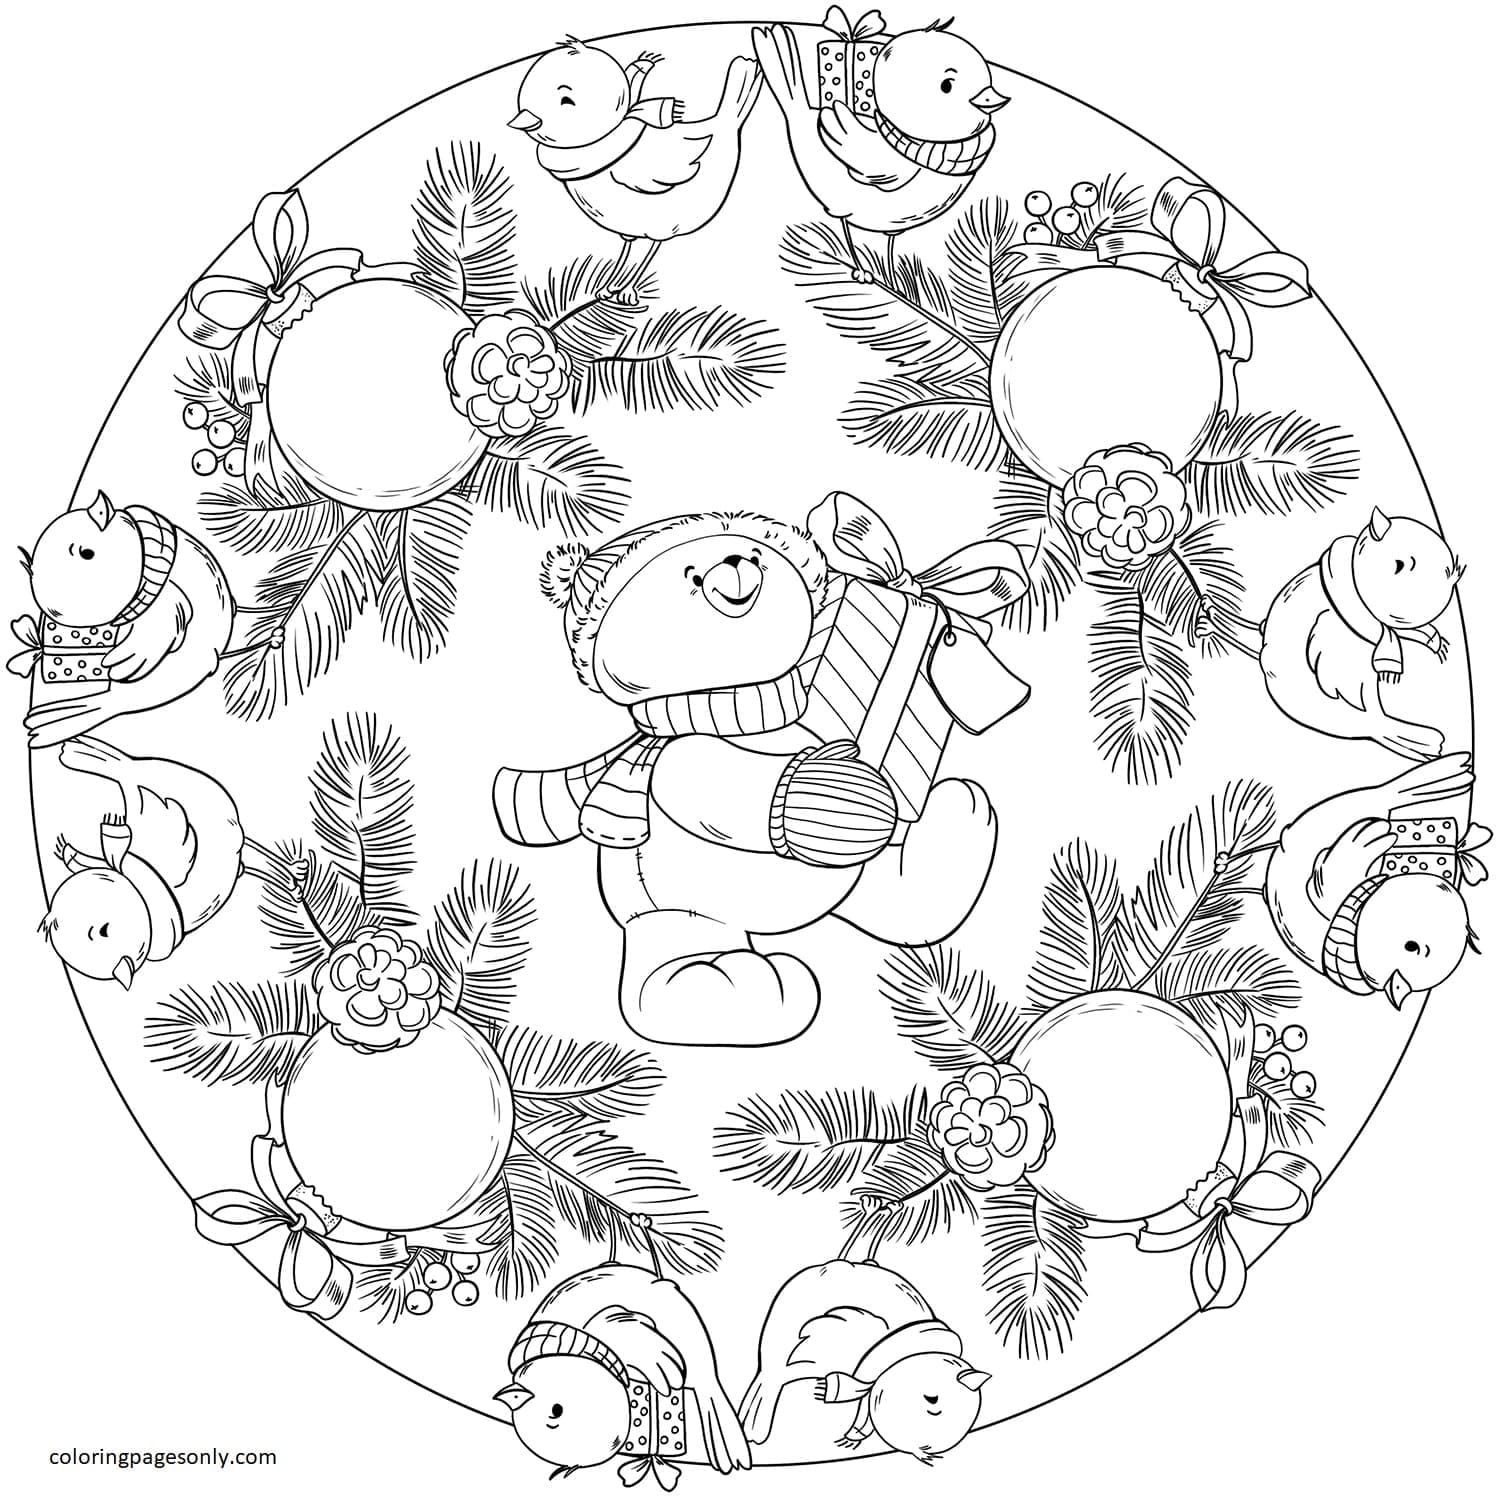 Mandala with Birds, Christmas Ornament and Teddy Bear Coloring Page